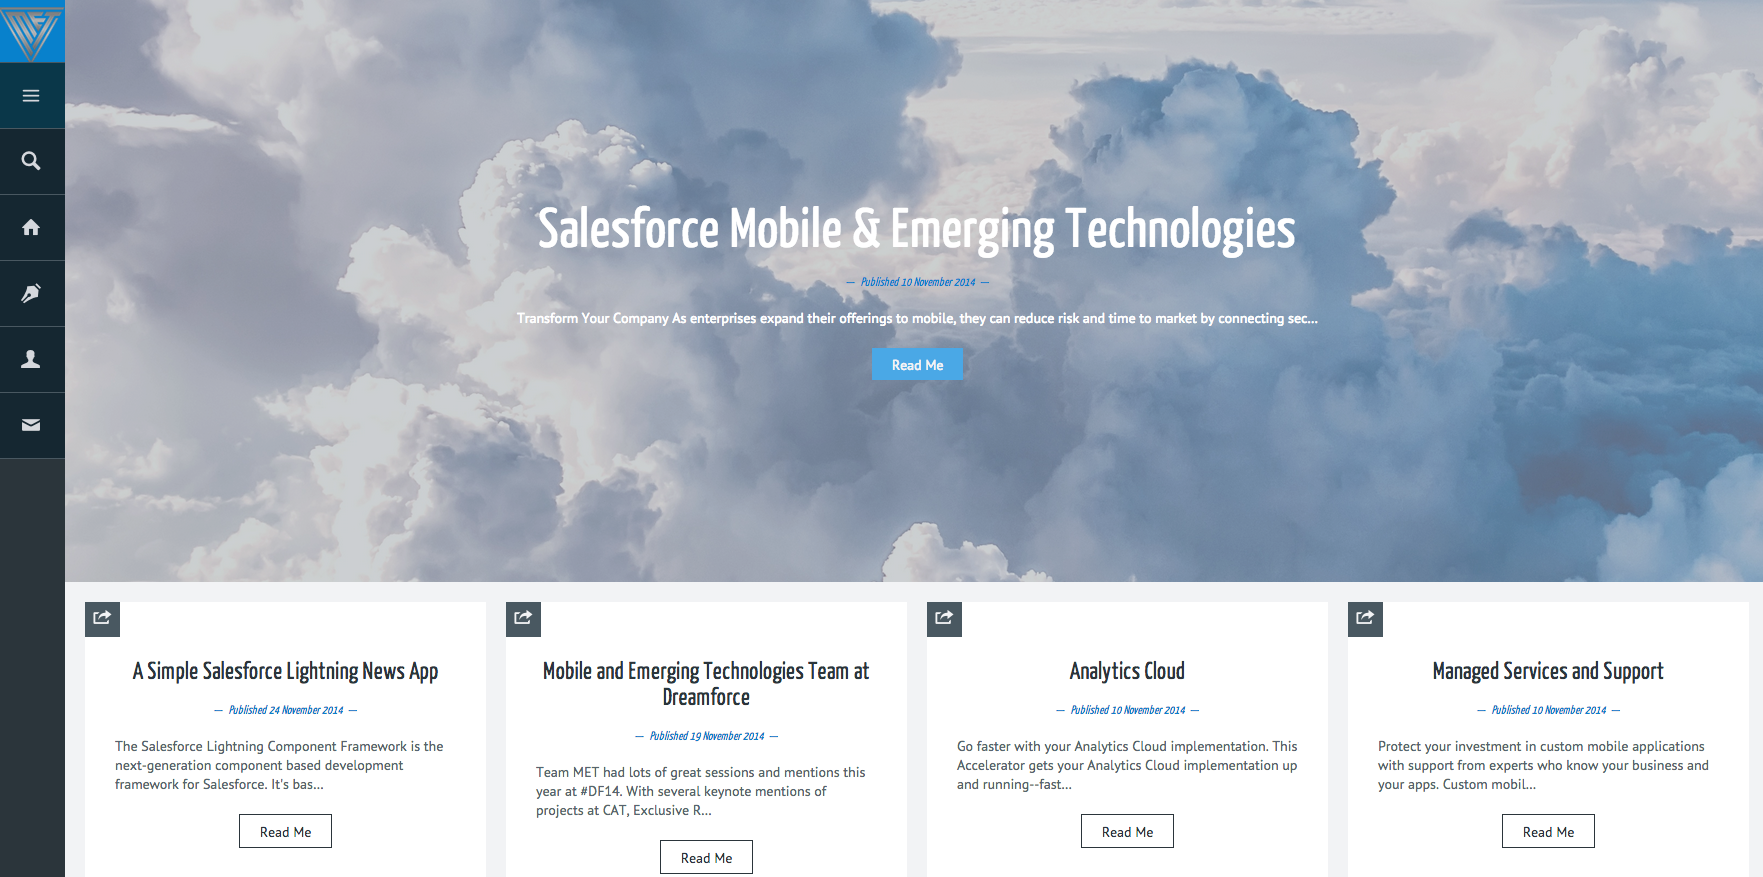 Salesforce_Mobile_and_Emerging_Technologies